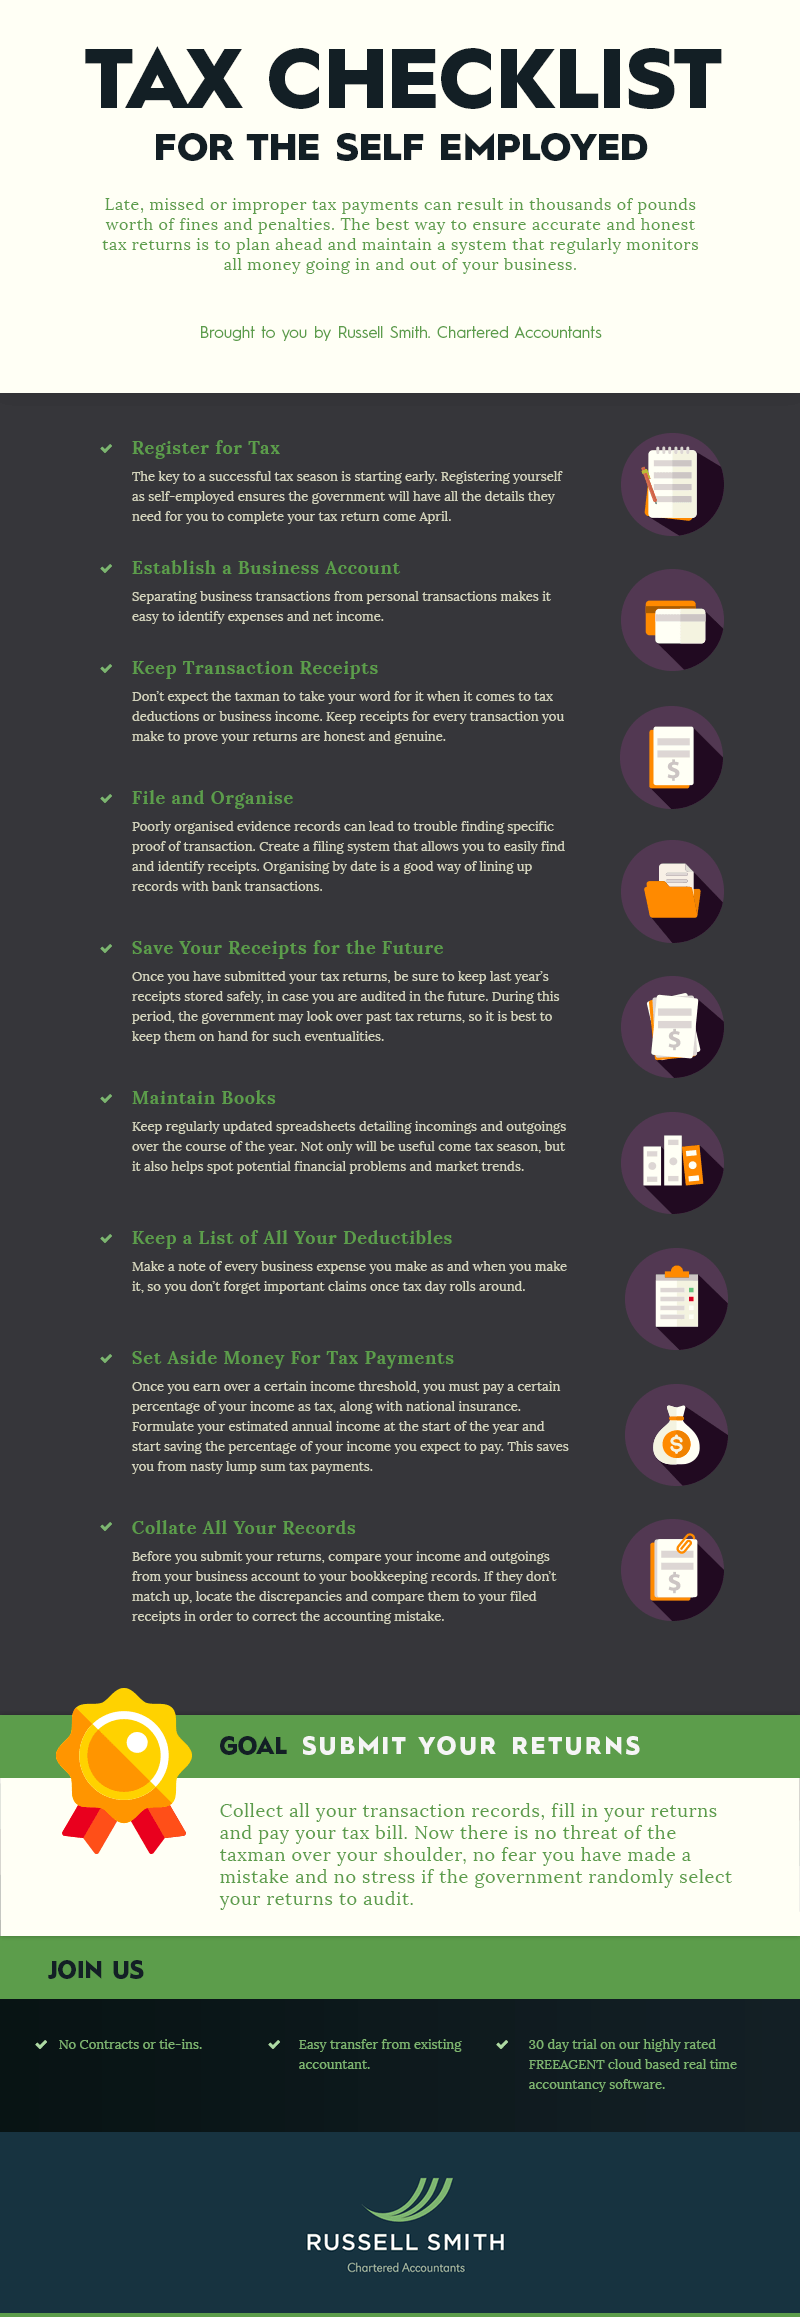 Tax-checklist-for-the-self-employed-infographic-plaza